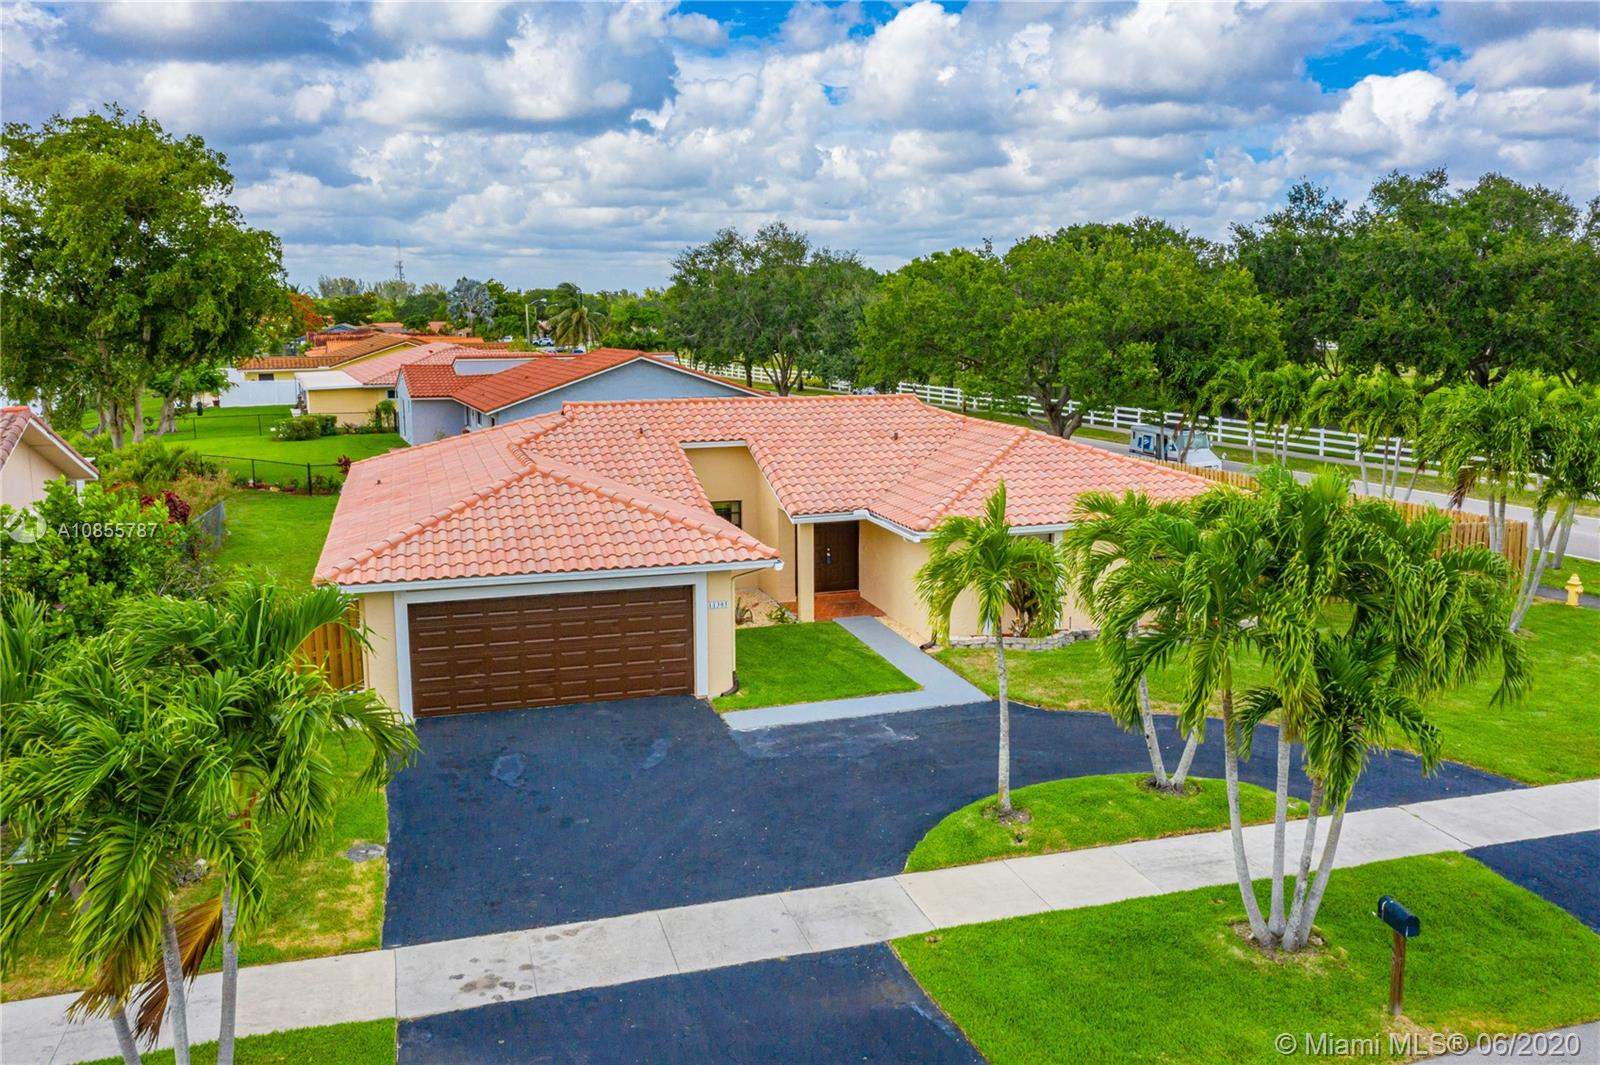 One of Cooper City 4 Bedroom Homes for Sale at 11305 SW 58th St